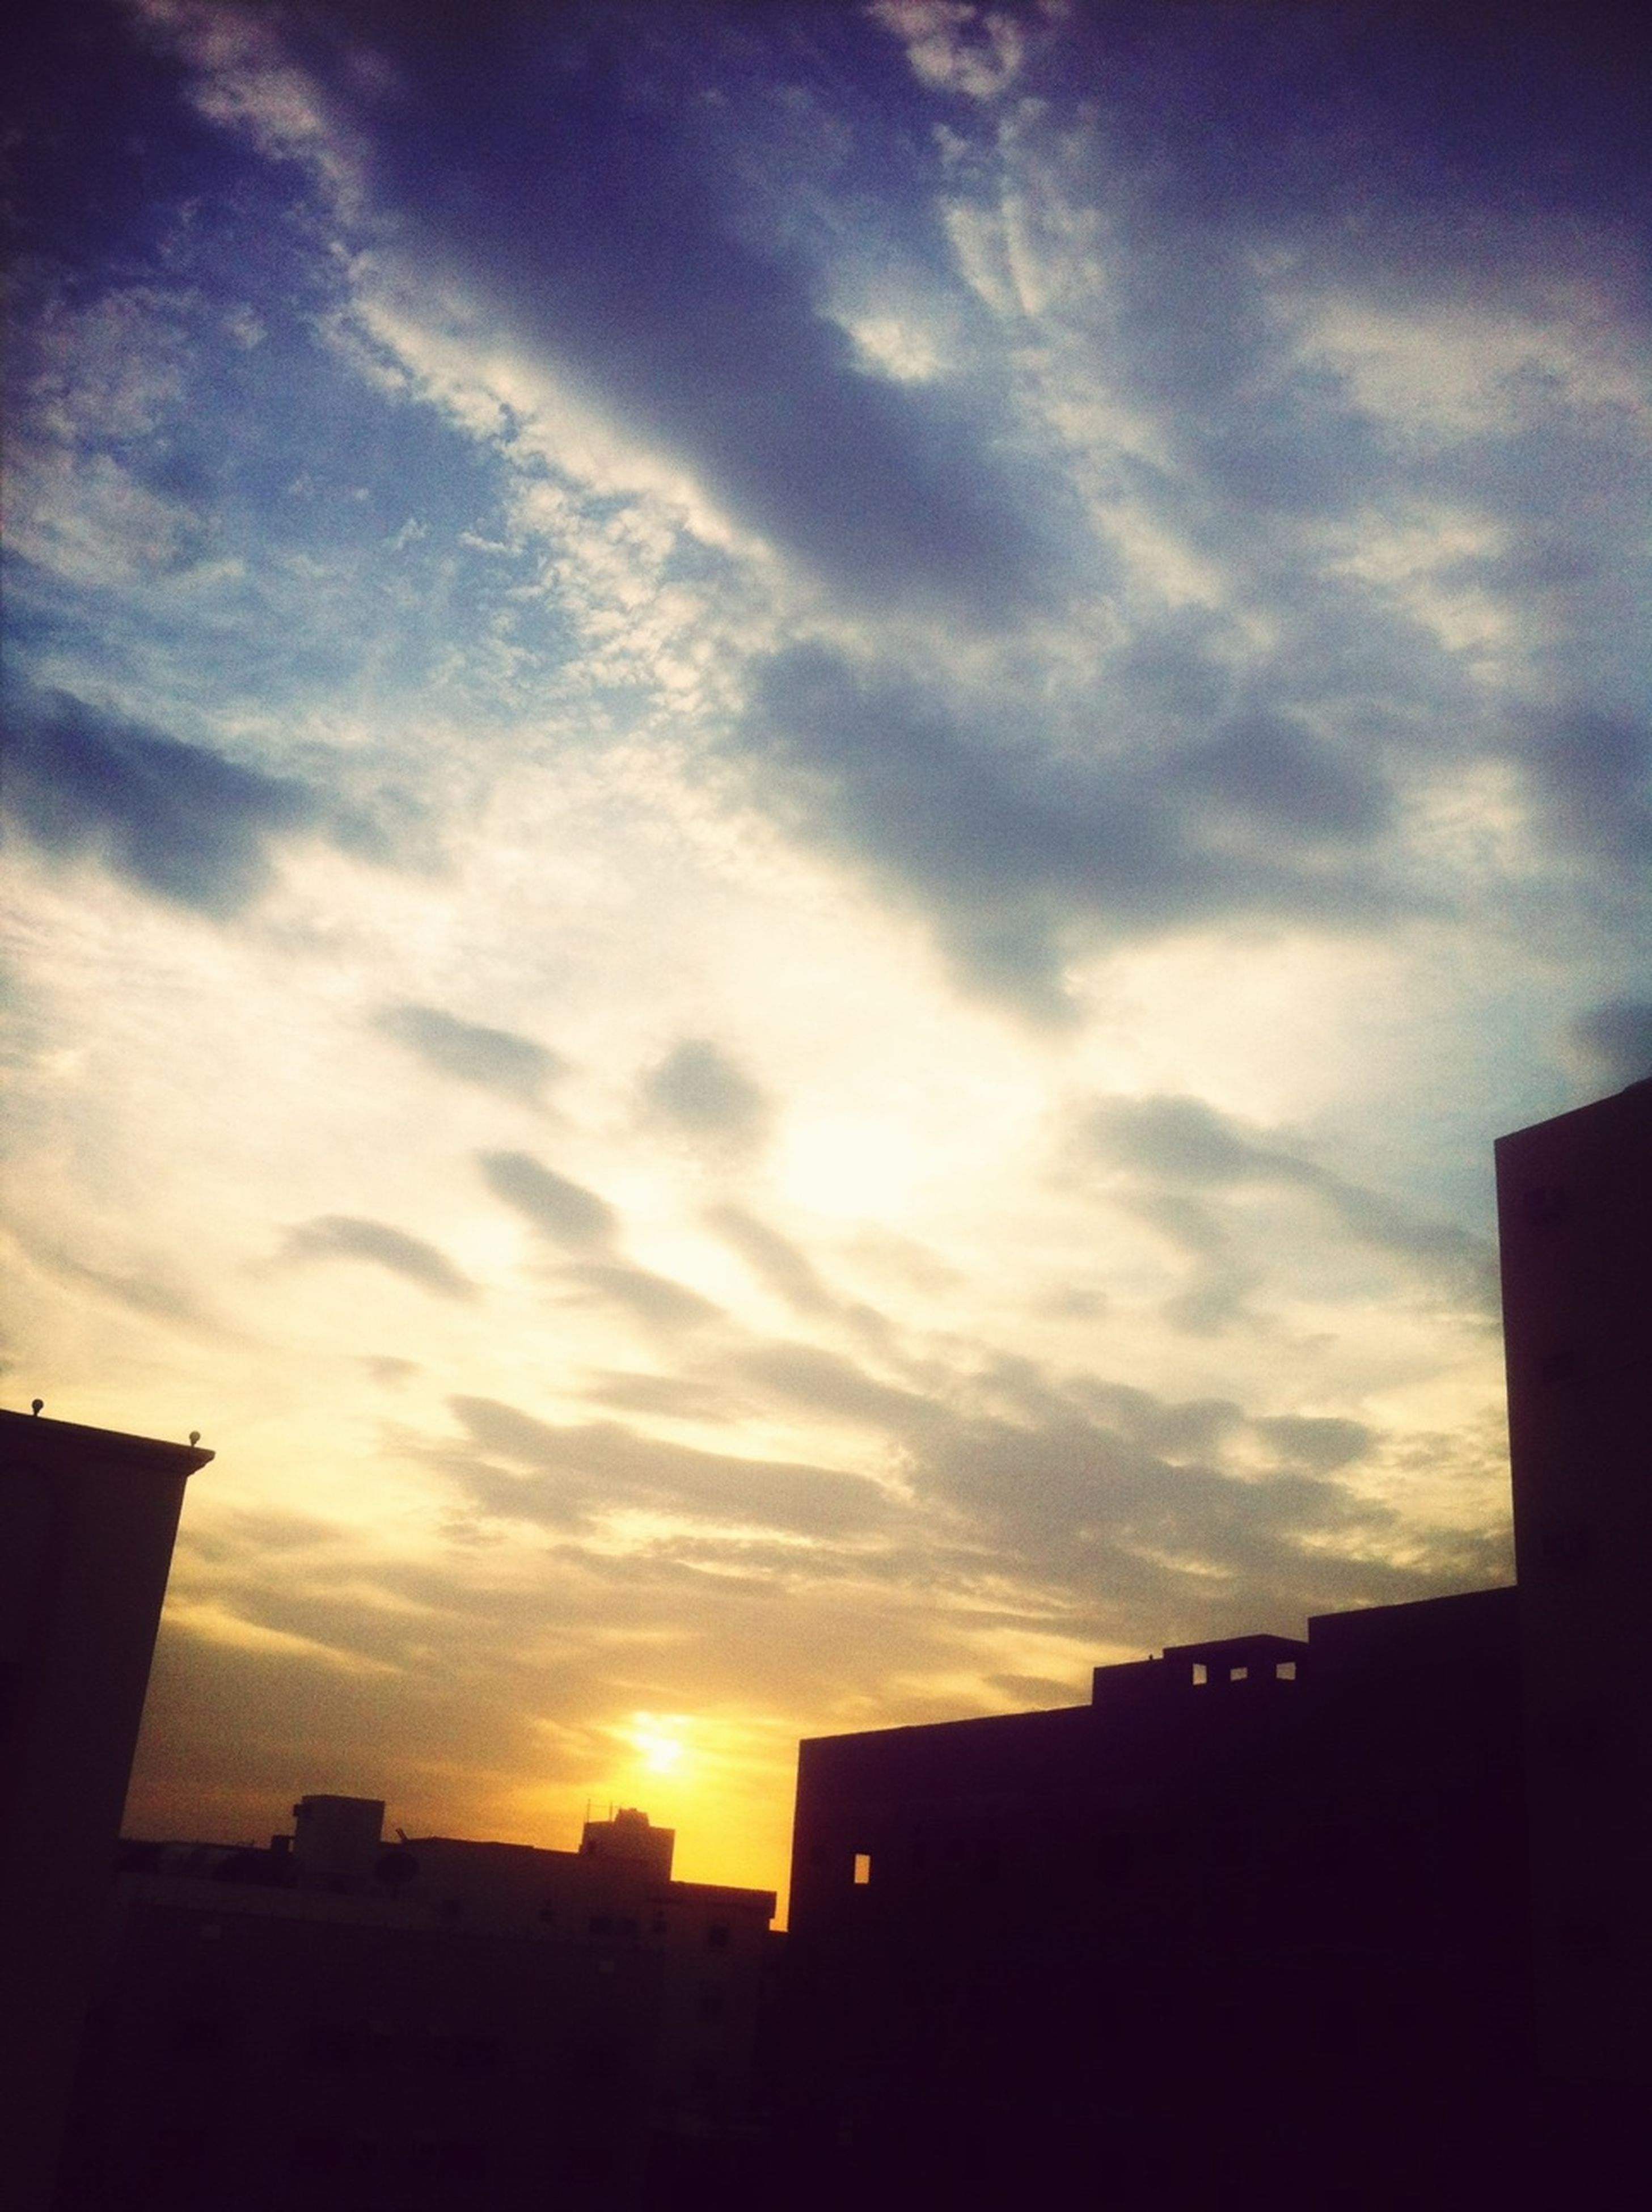 building exterior, architecture, built structure, sunset, silhouette, sky, cloud - sky, low angle view, residential structure, house, city, residential building, building, cloud, sunlight, outdoors, cloudy, orange color, nature, beauty in nature